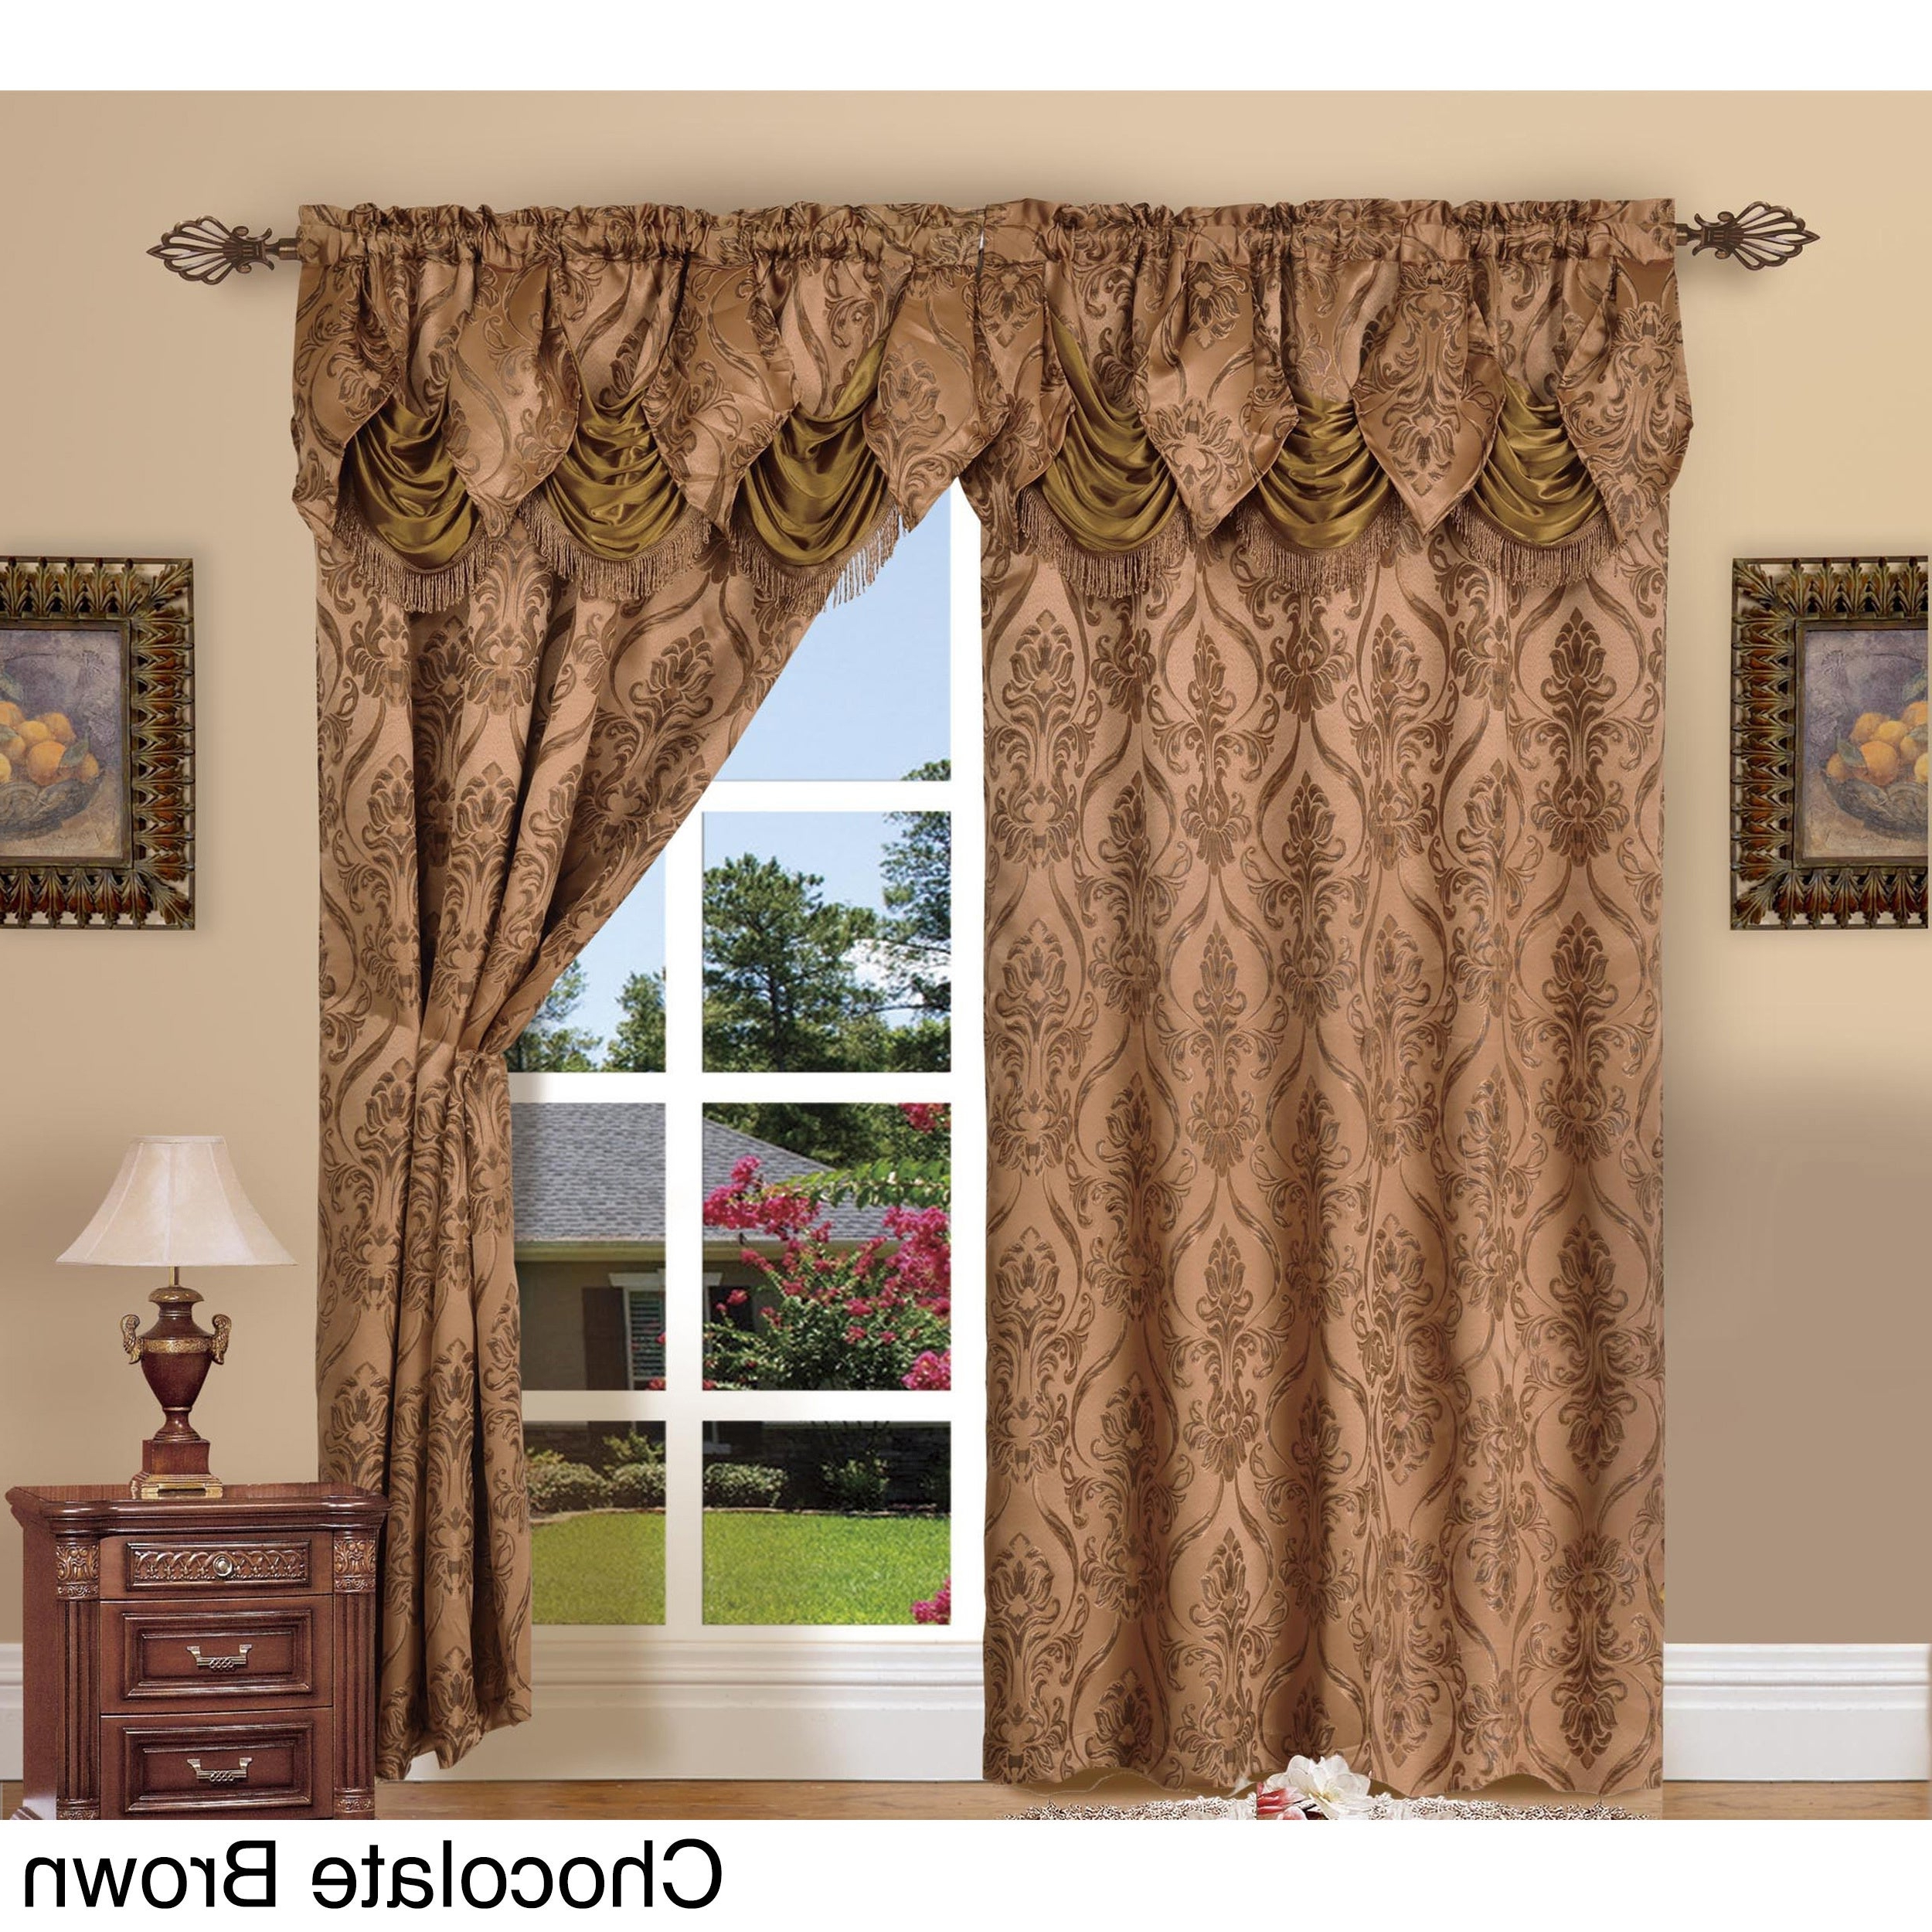 Most Recently Released Elegant Comfort Luxury Penelopie Jacquard 84 Inch Length Window Curtain Panel Pair With Regard To Elegant Comfort Luxury Penelopie Jacquard Window Curtain Panel Pairs (View 2 of 20)